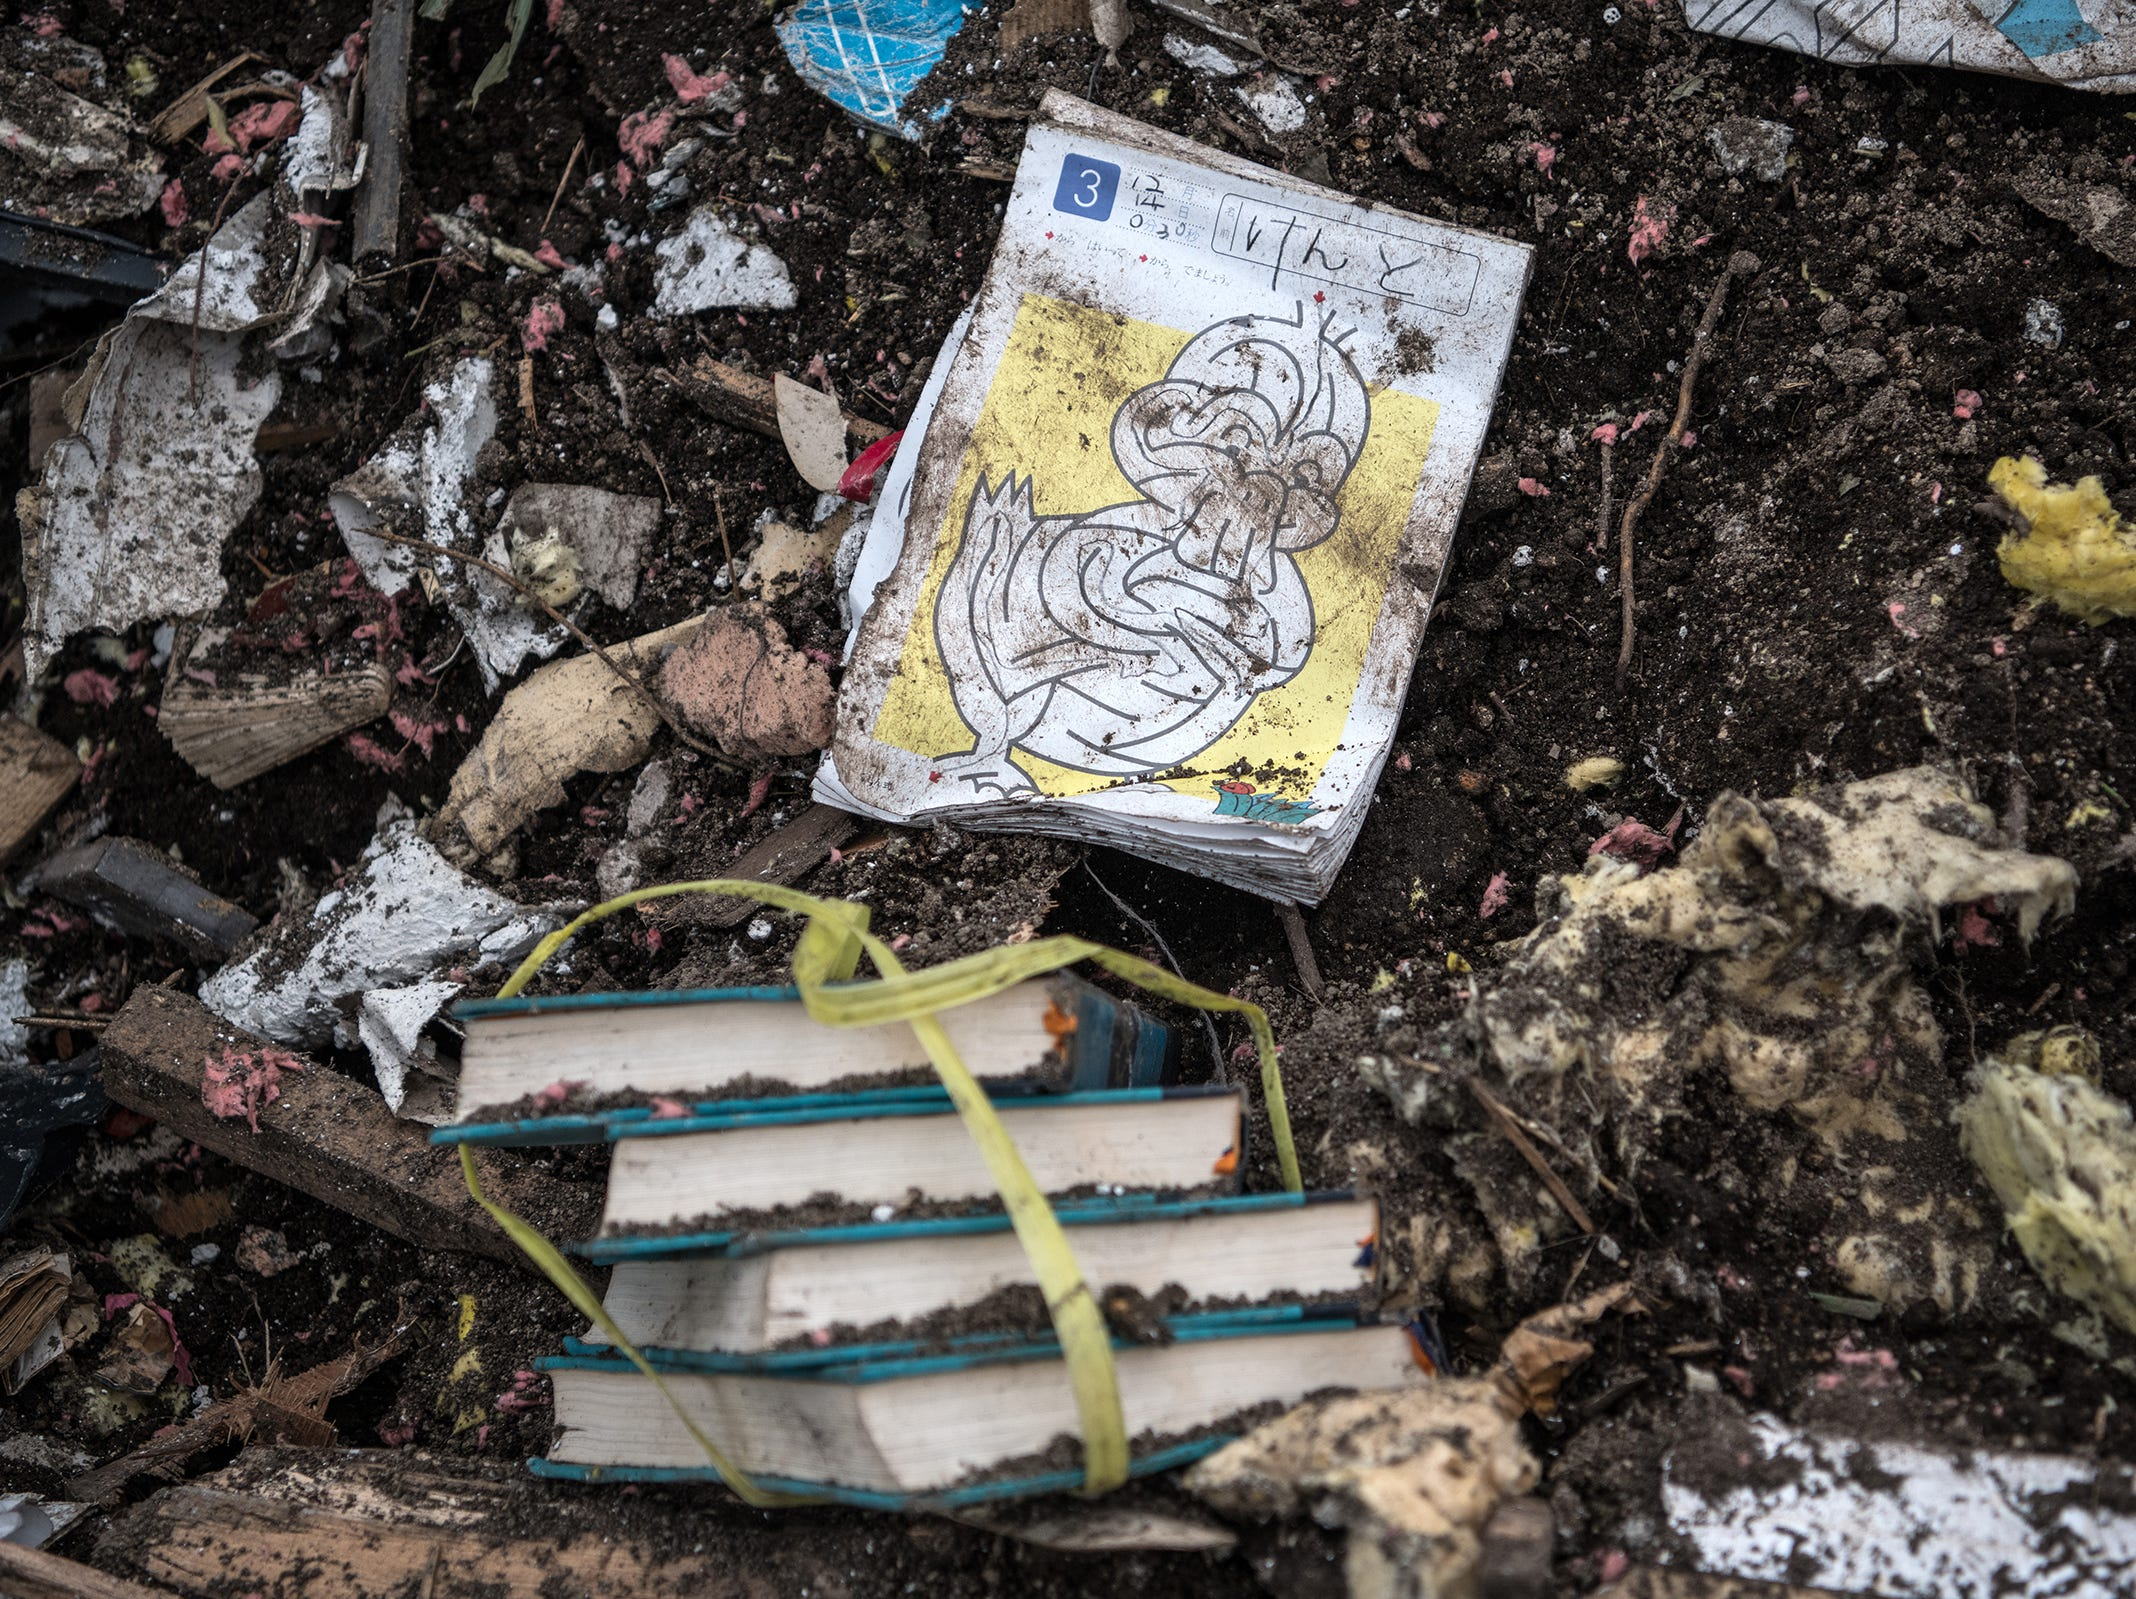 A children's book lies on the ground amongst the rubble of a building destroyed by a landslide triggered by an earthquake, Saturday, in Atsuma, Japan.